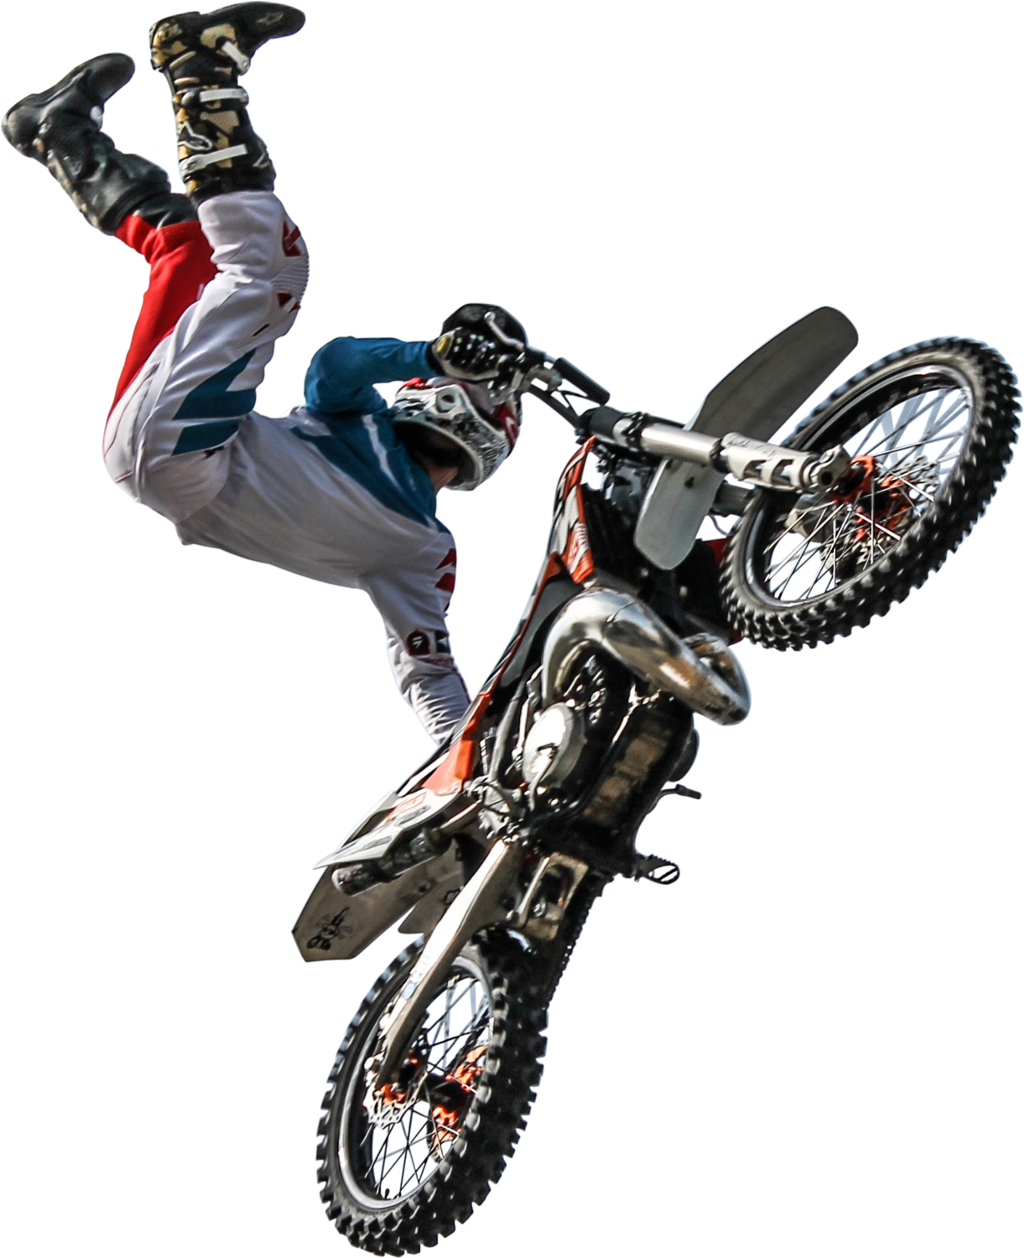 freetoedit dirtbike motocross png sticker jump stunts